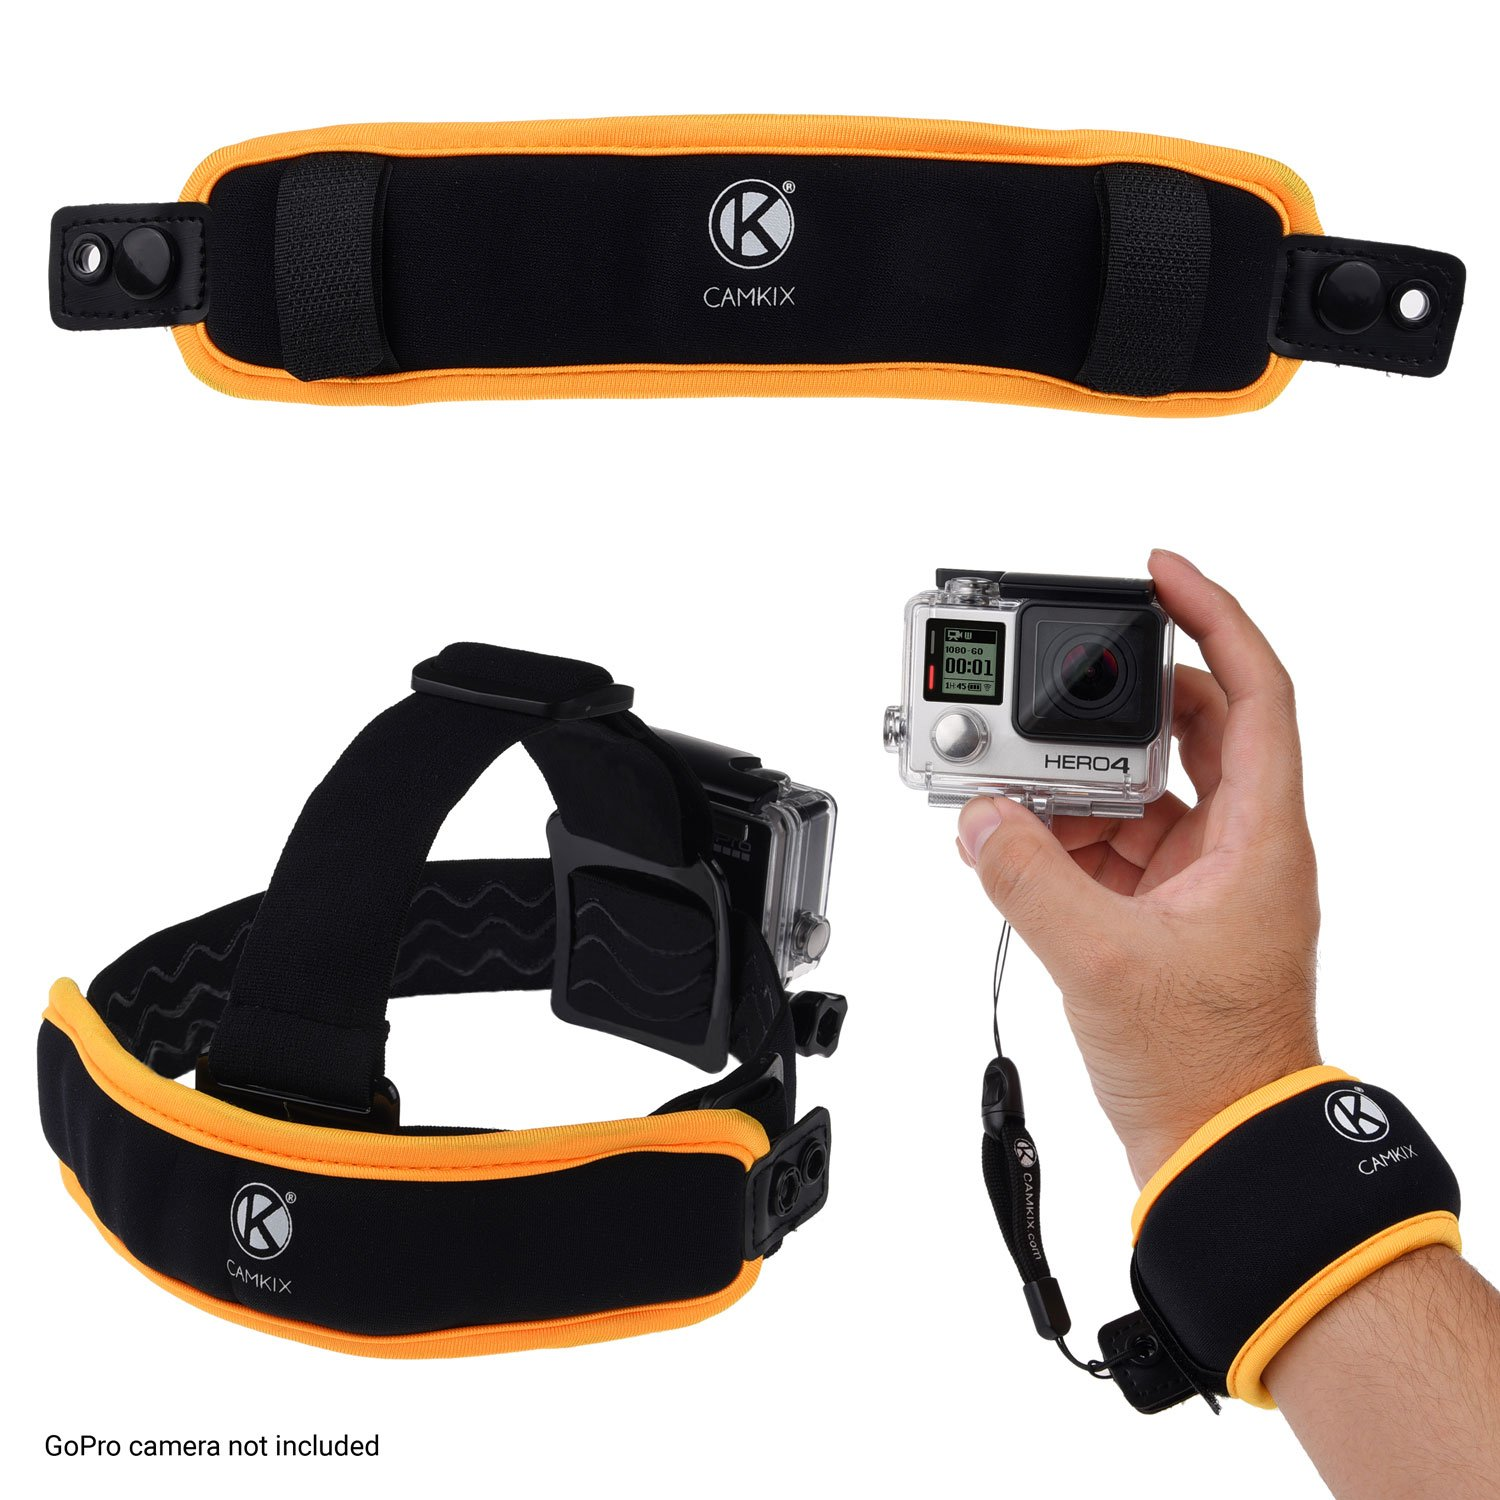 CamKix 2in1 Floating Wrist Strap & Headstrap Floater compatible with GoPro Hero 7, 6, 5, Black, Session, Hero 4, Session, Black, Silver, Hero+ LCD, 3+, 3, 2, 1 - Prevents Your Camera From Sinking - Wrap Around Wrist or Attach to a Headstrap